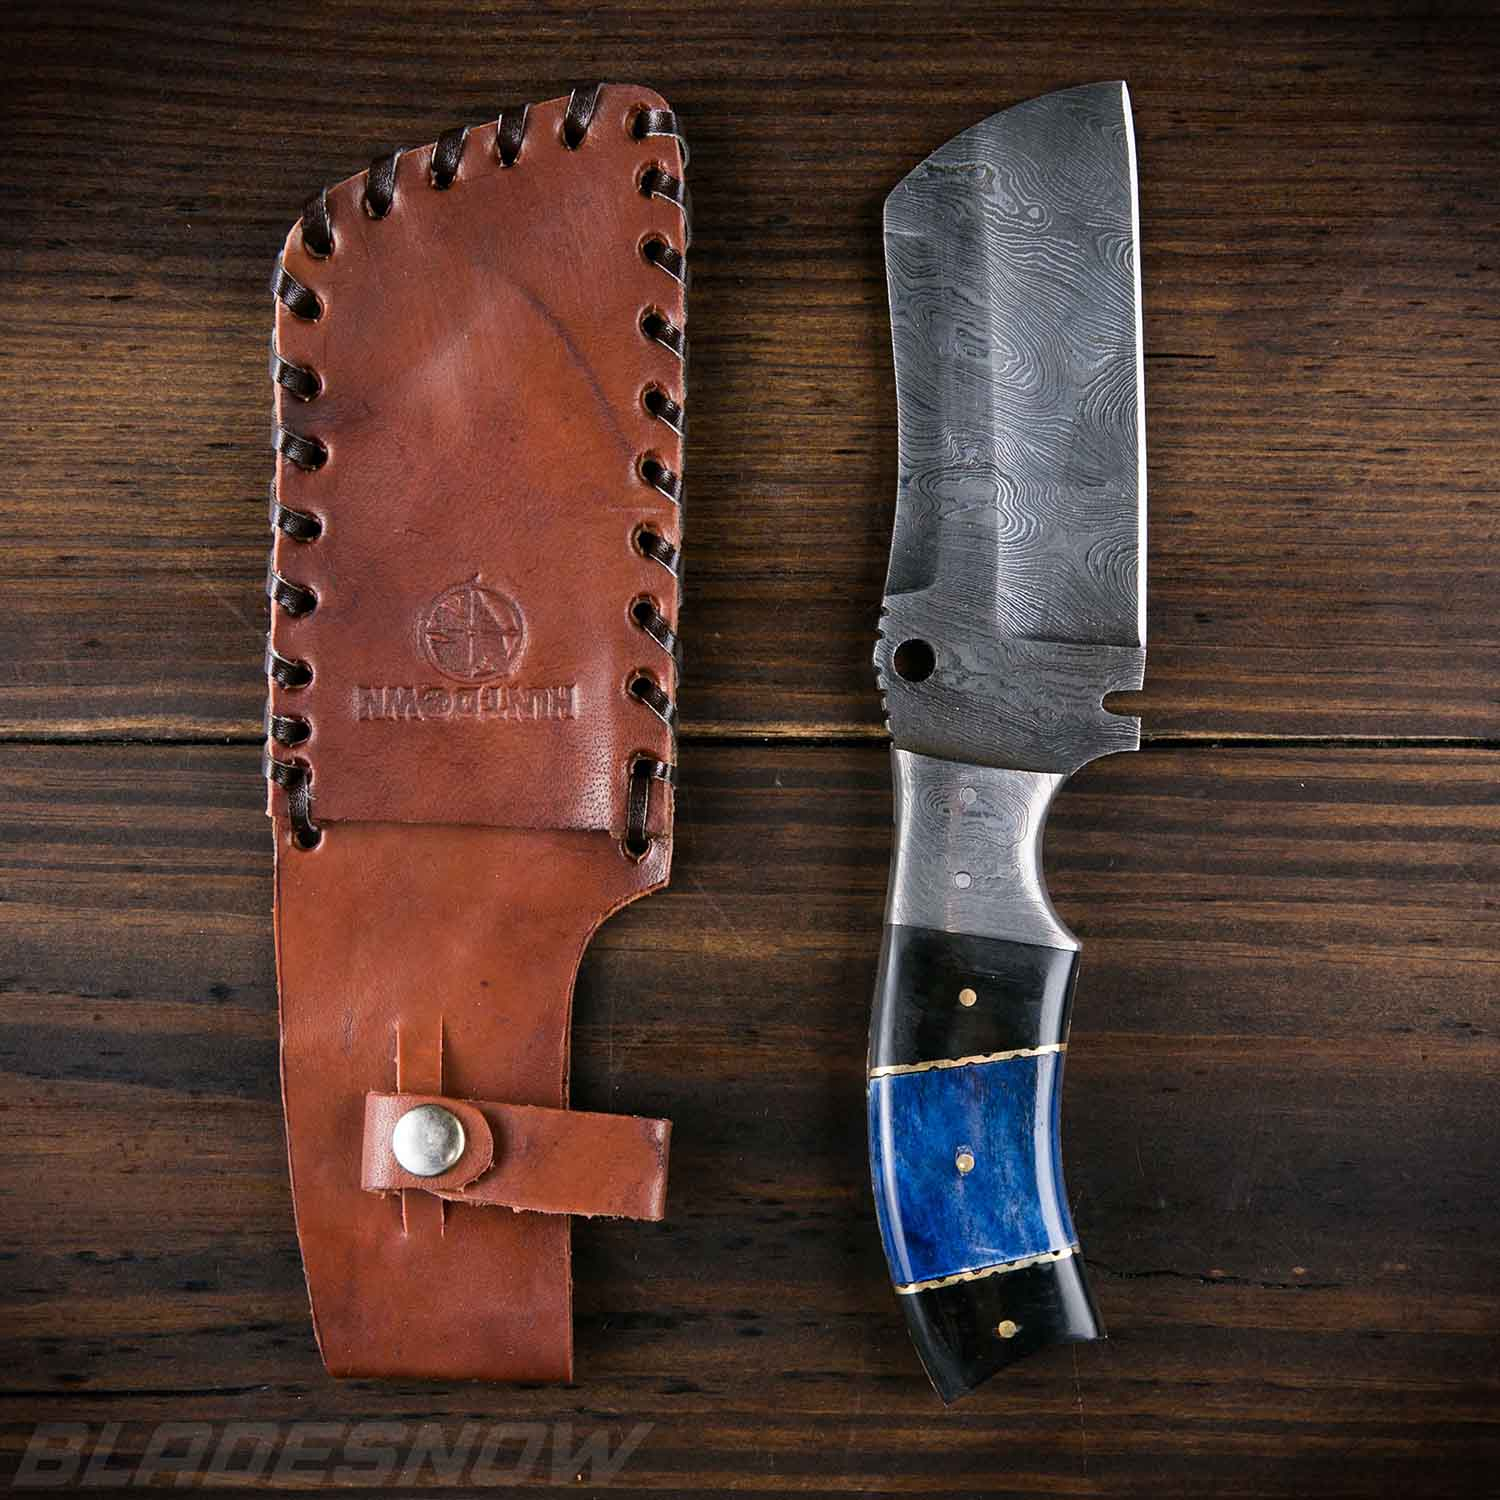 Damascus Steel Cleaver - Fixed Blade Knife Blue Handle